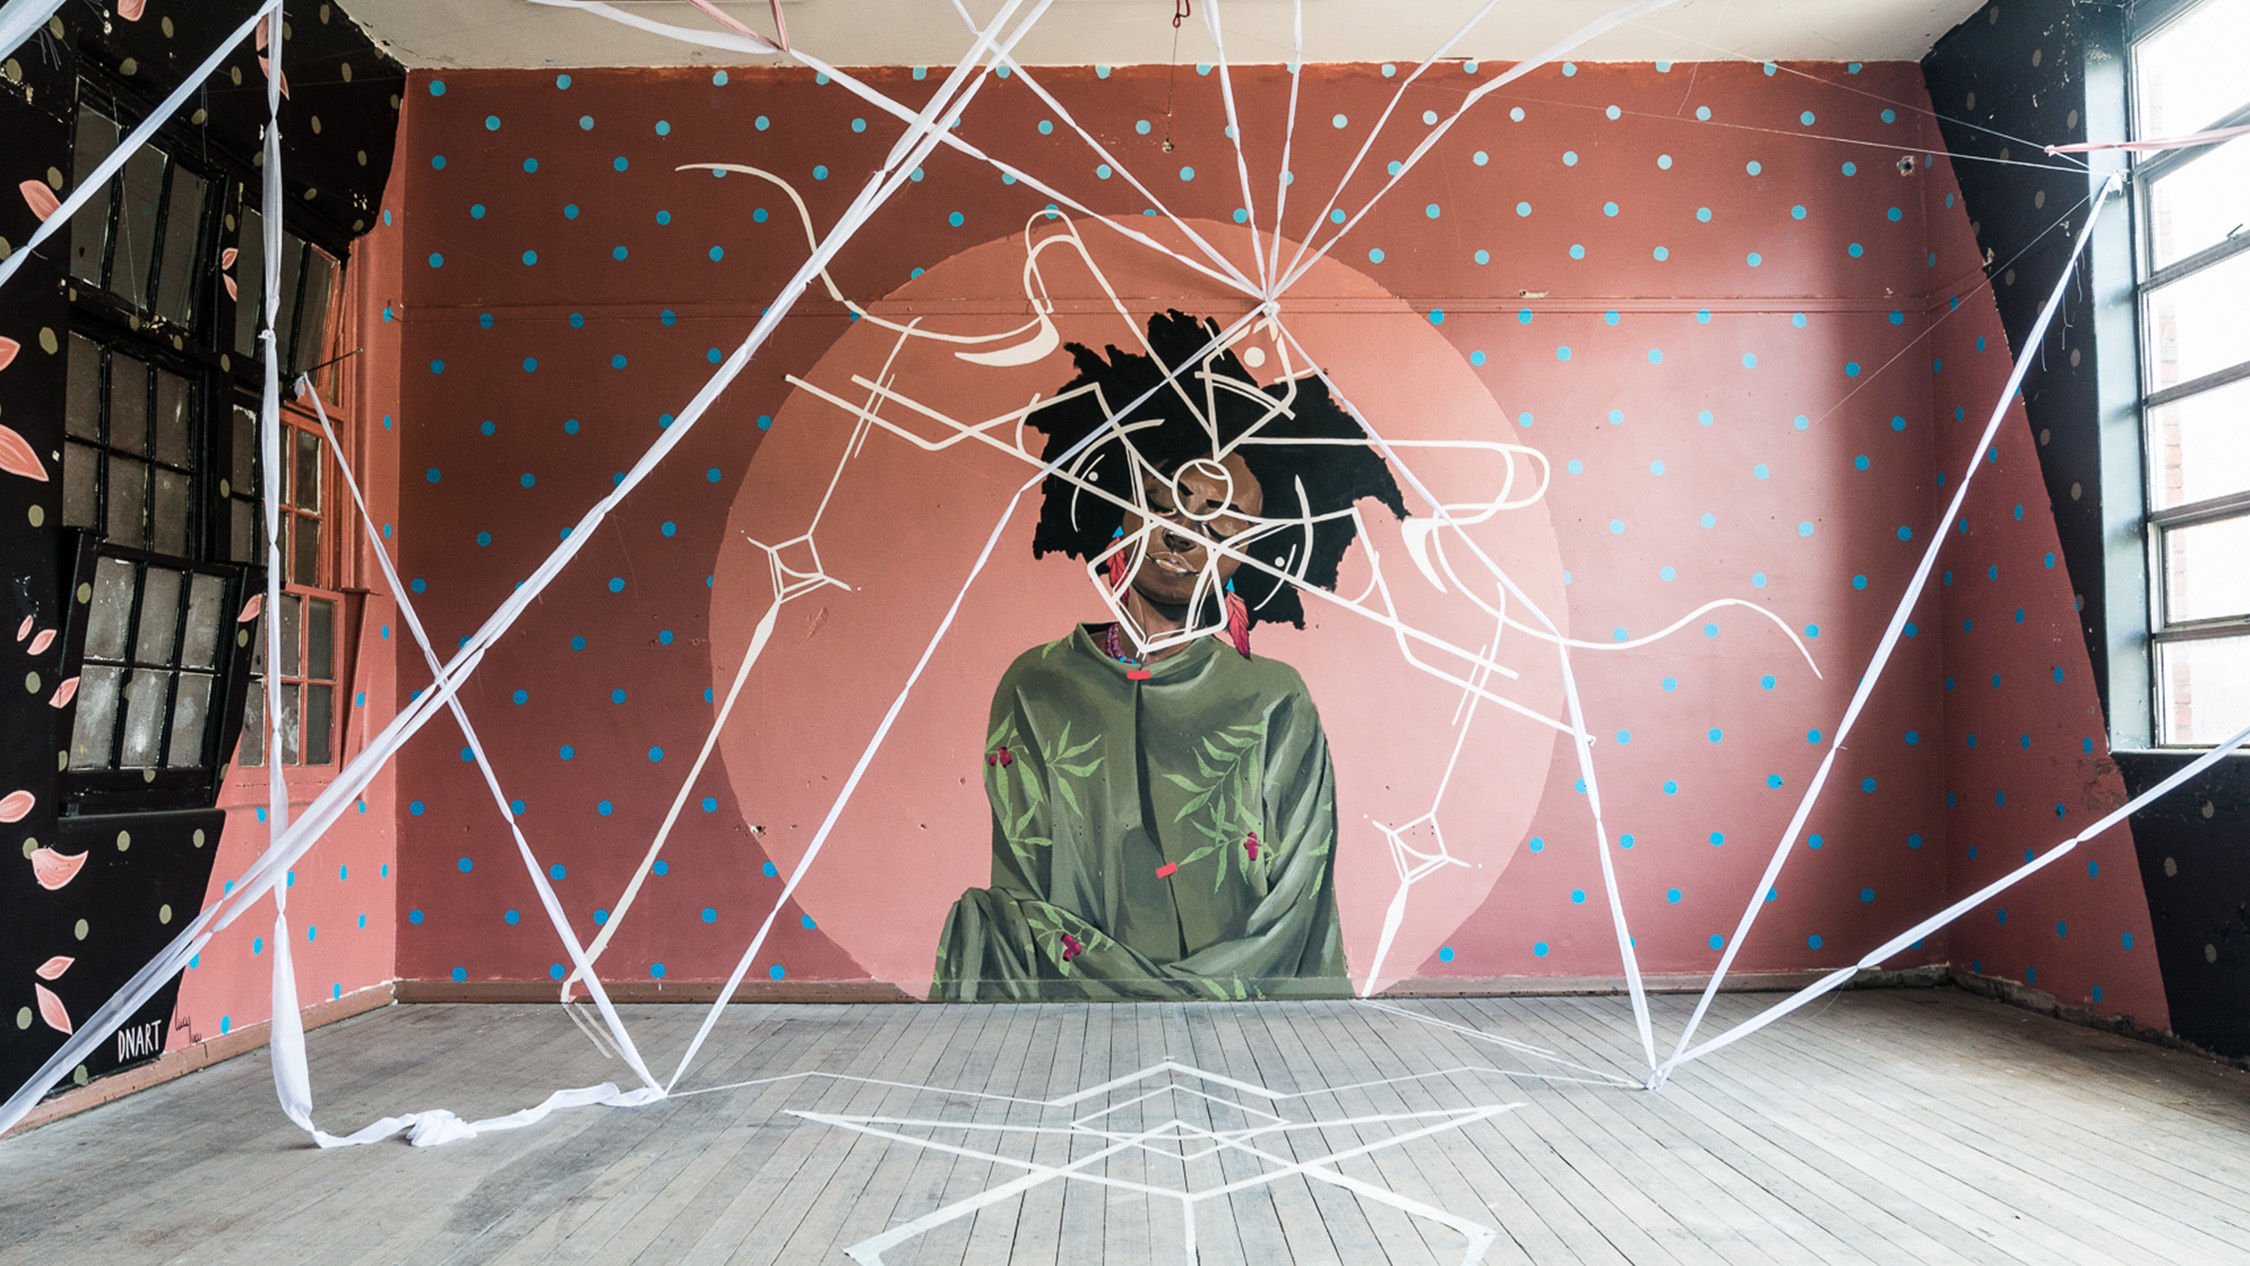 Thirty street artists have transformed an abandoned school in Collingwood